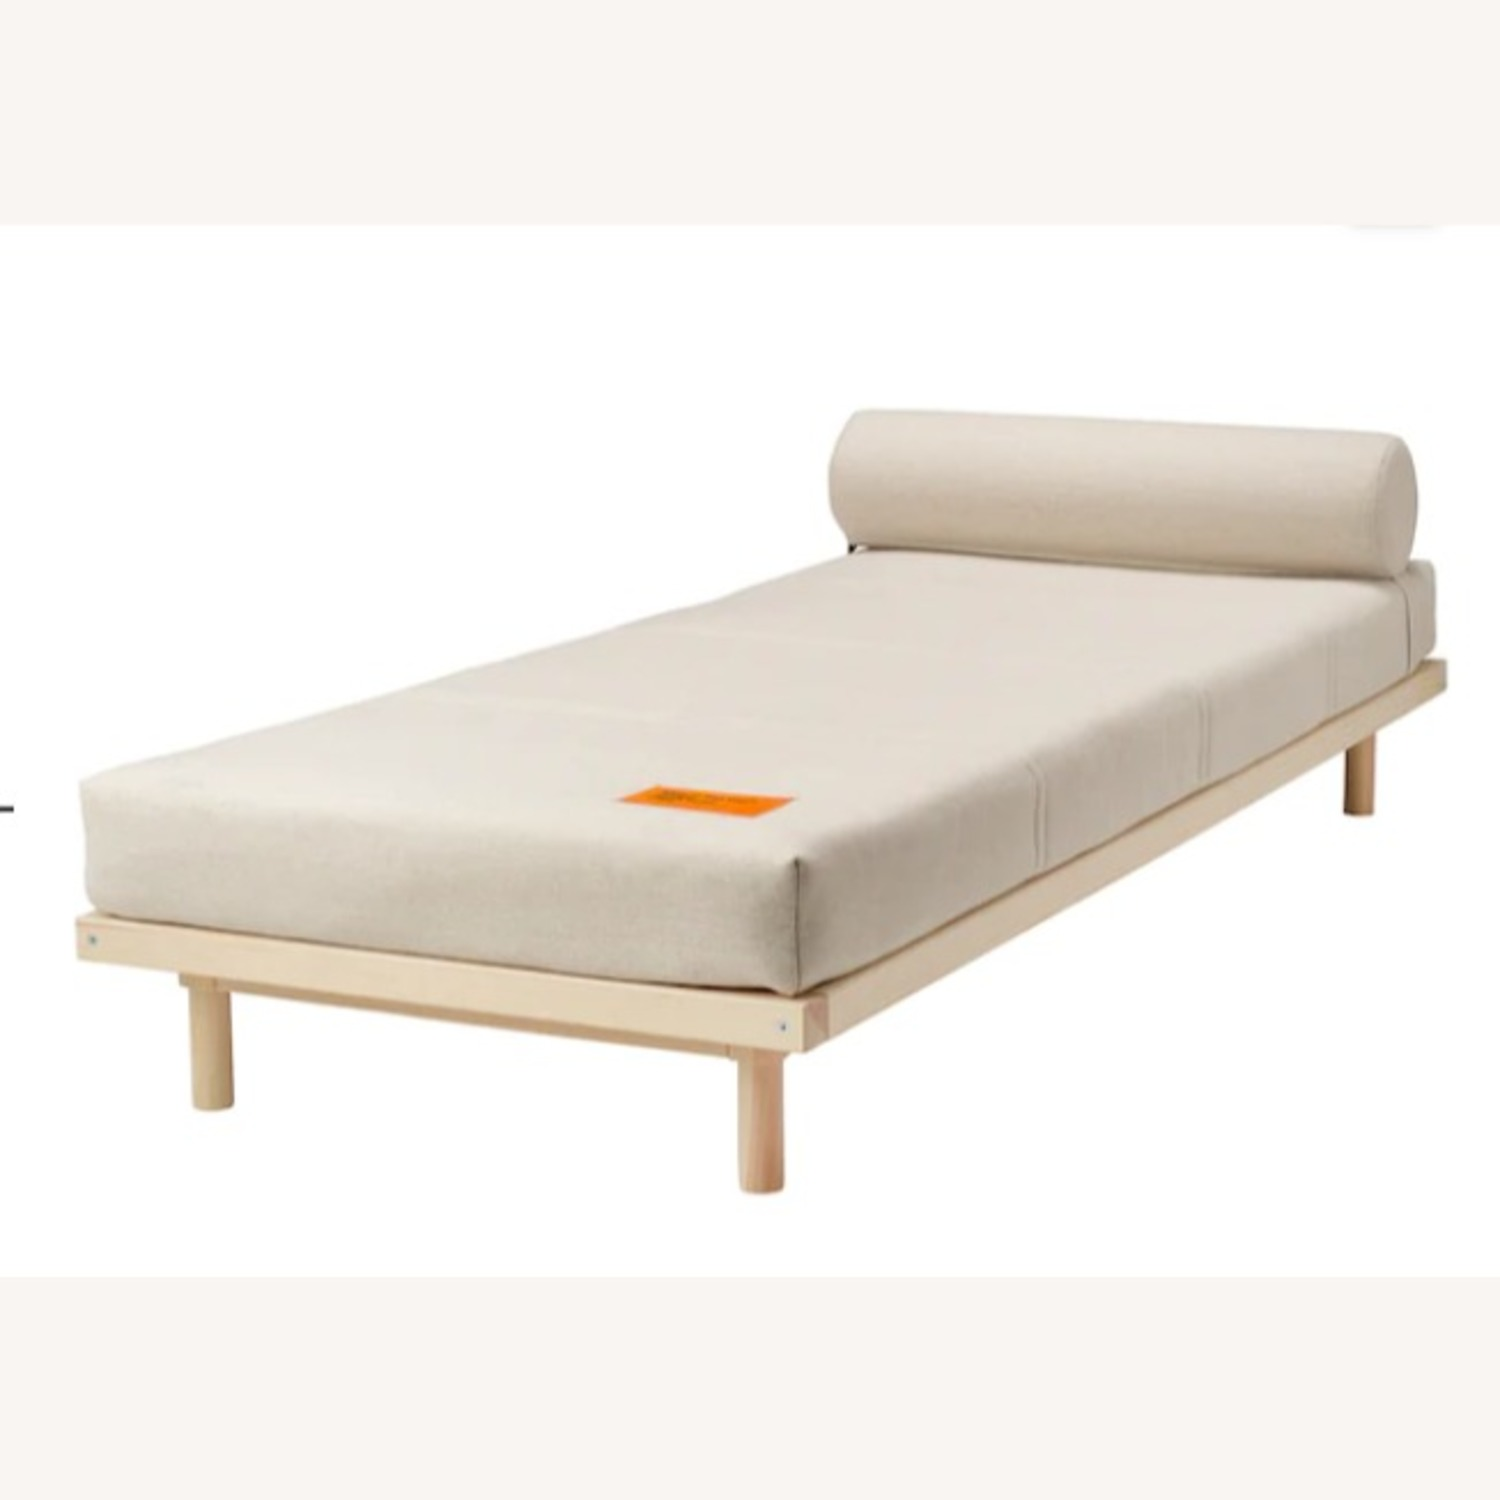 Ikea Virgil Abloh's Markerad Daybed - image-3